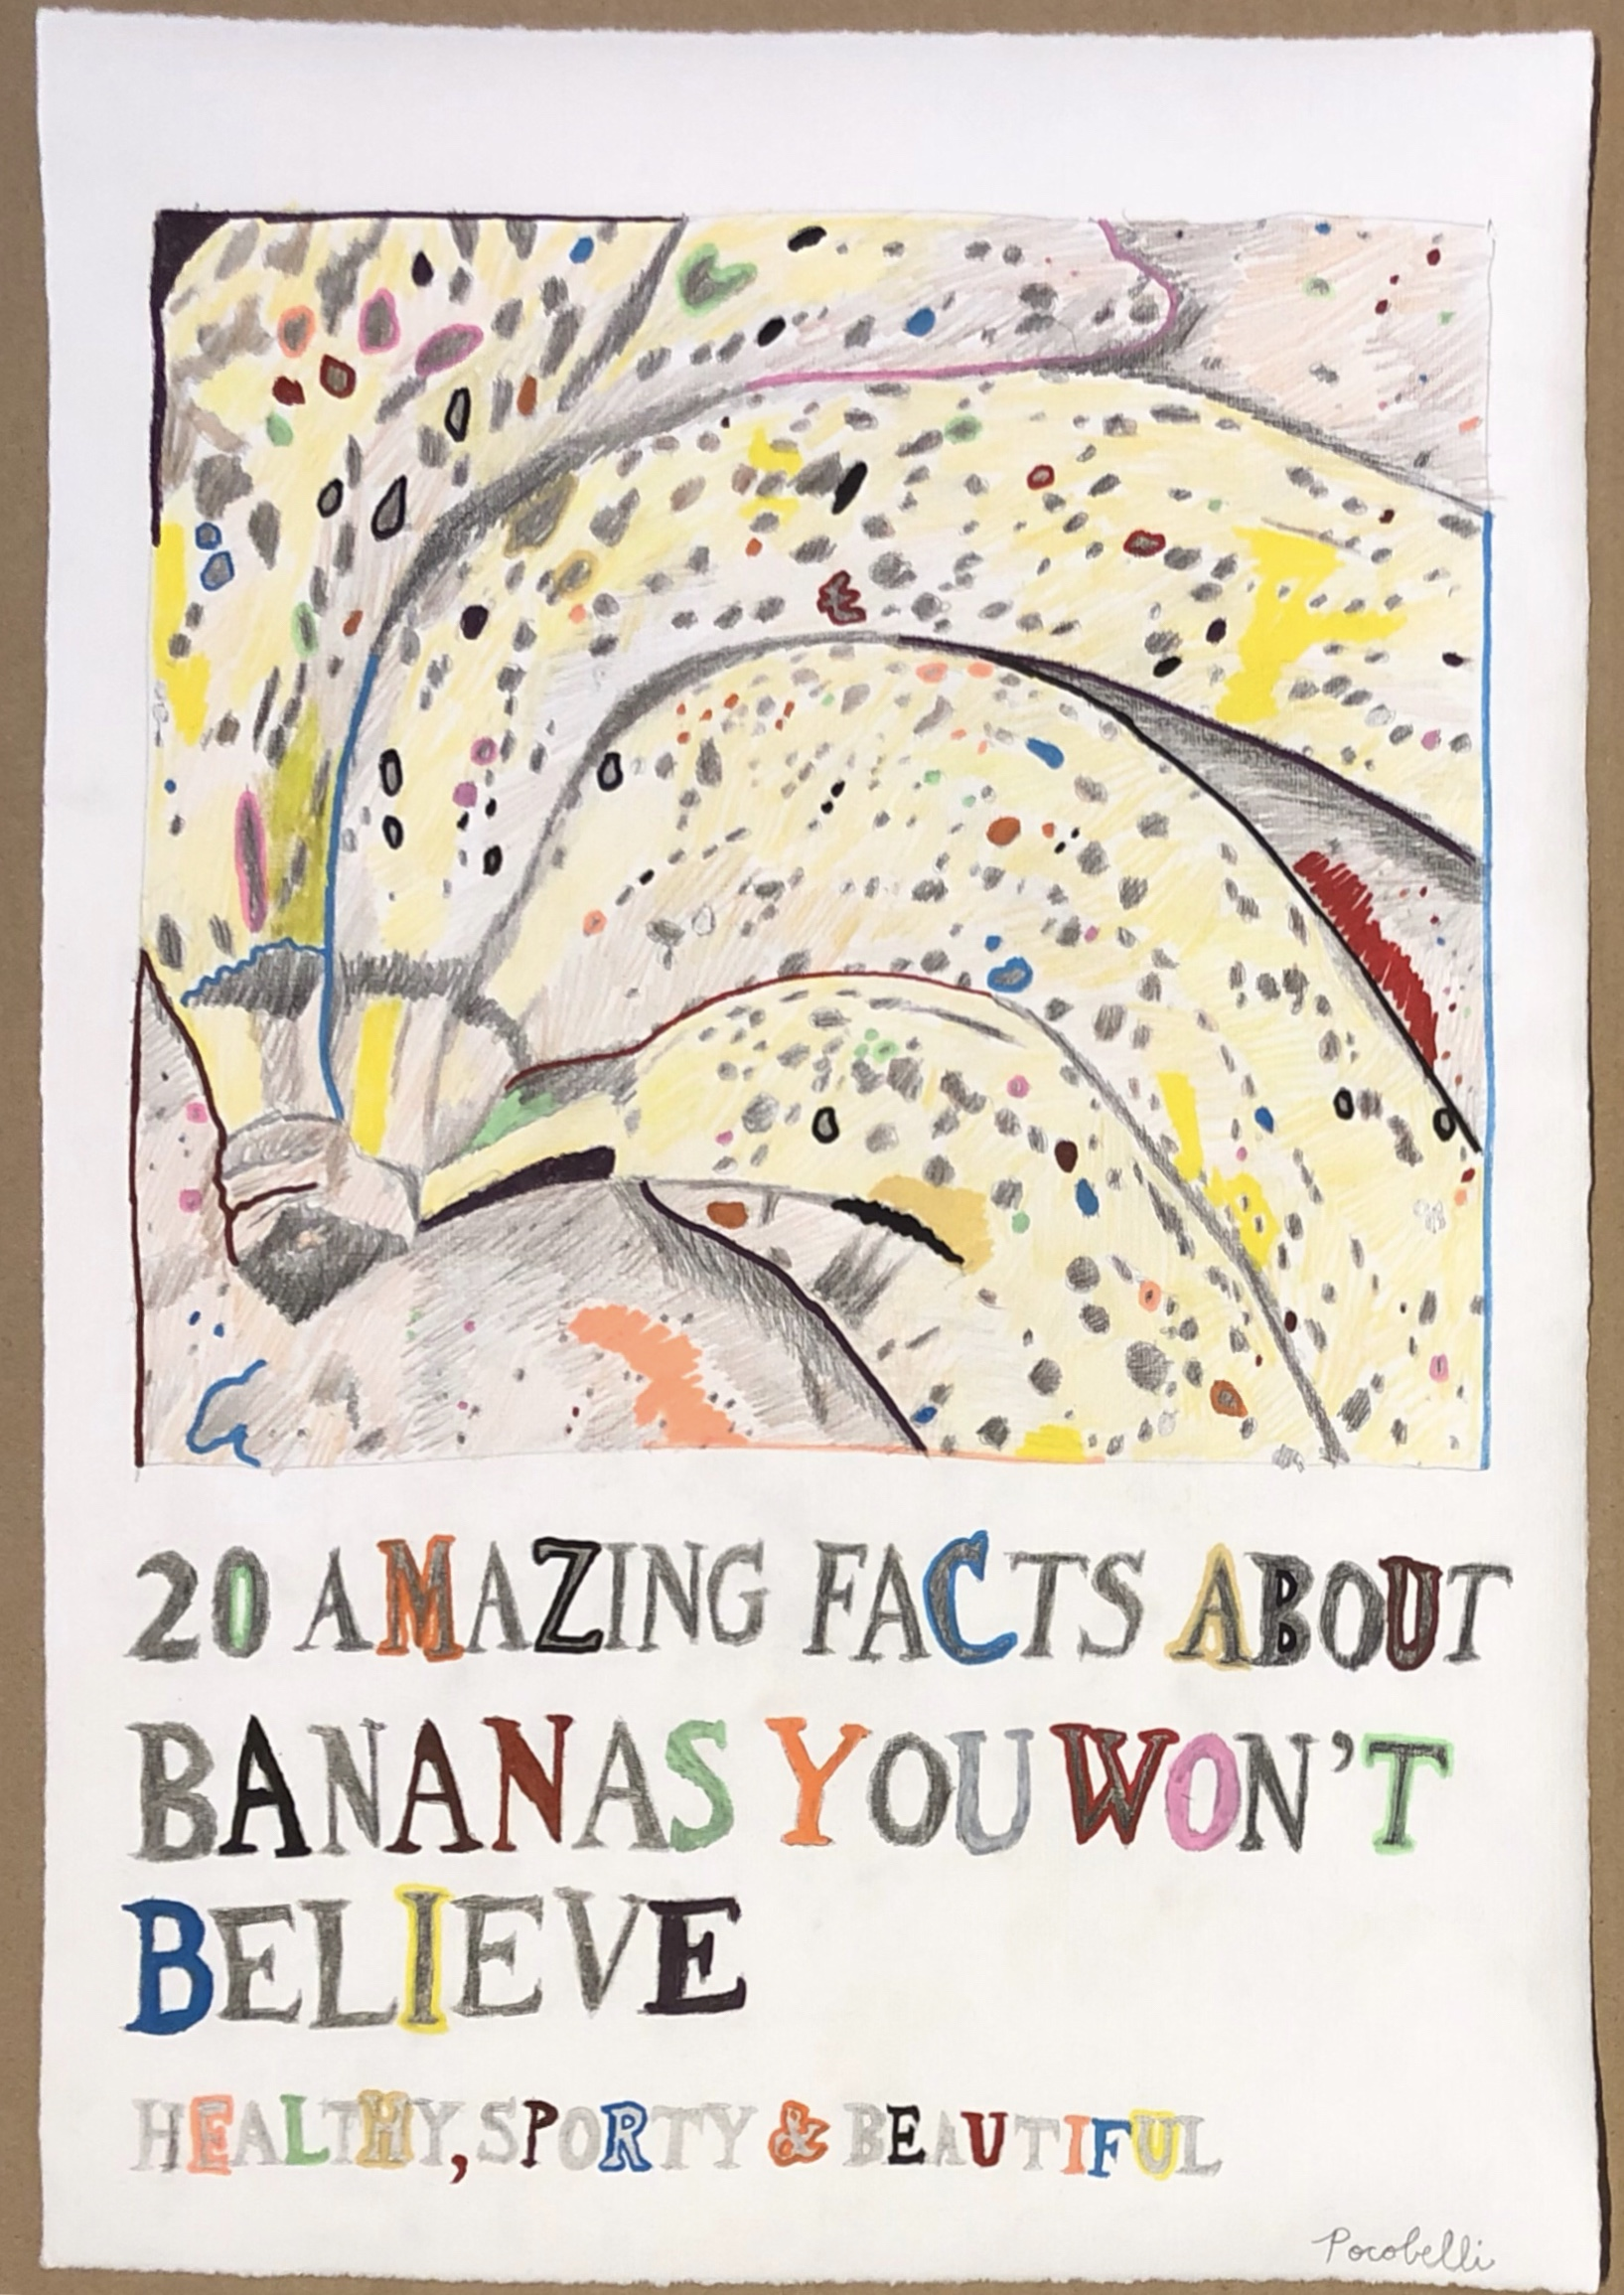 """20 Amazing Facts About Bananas You Won't Believe"", 33.5 cm x 48.5 cm, mixed media on paper."